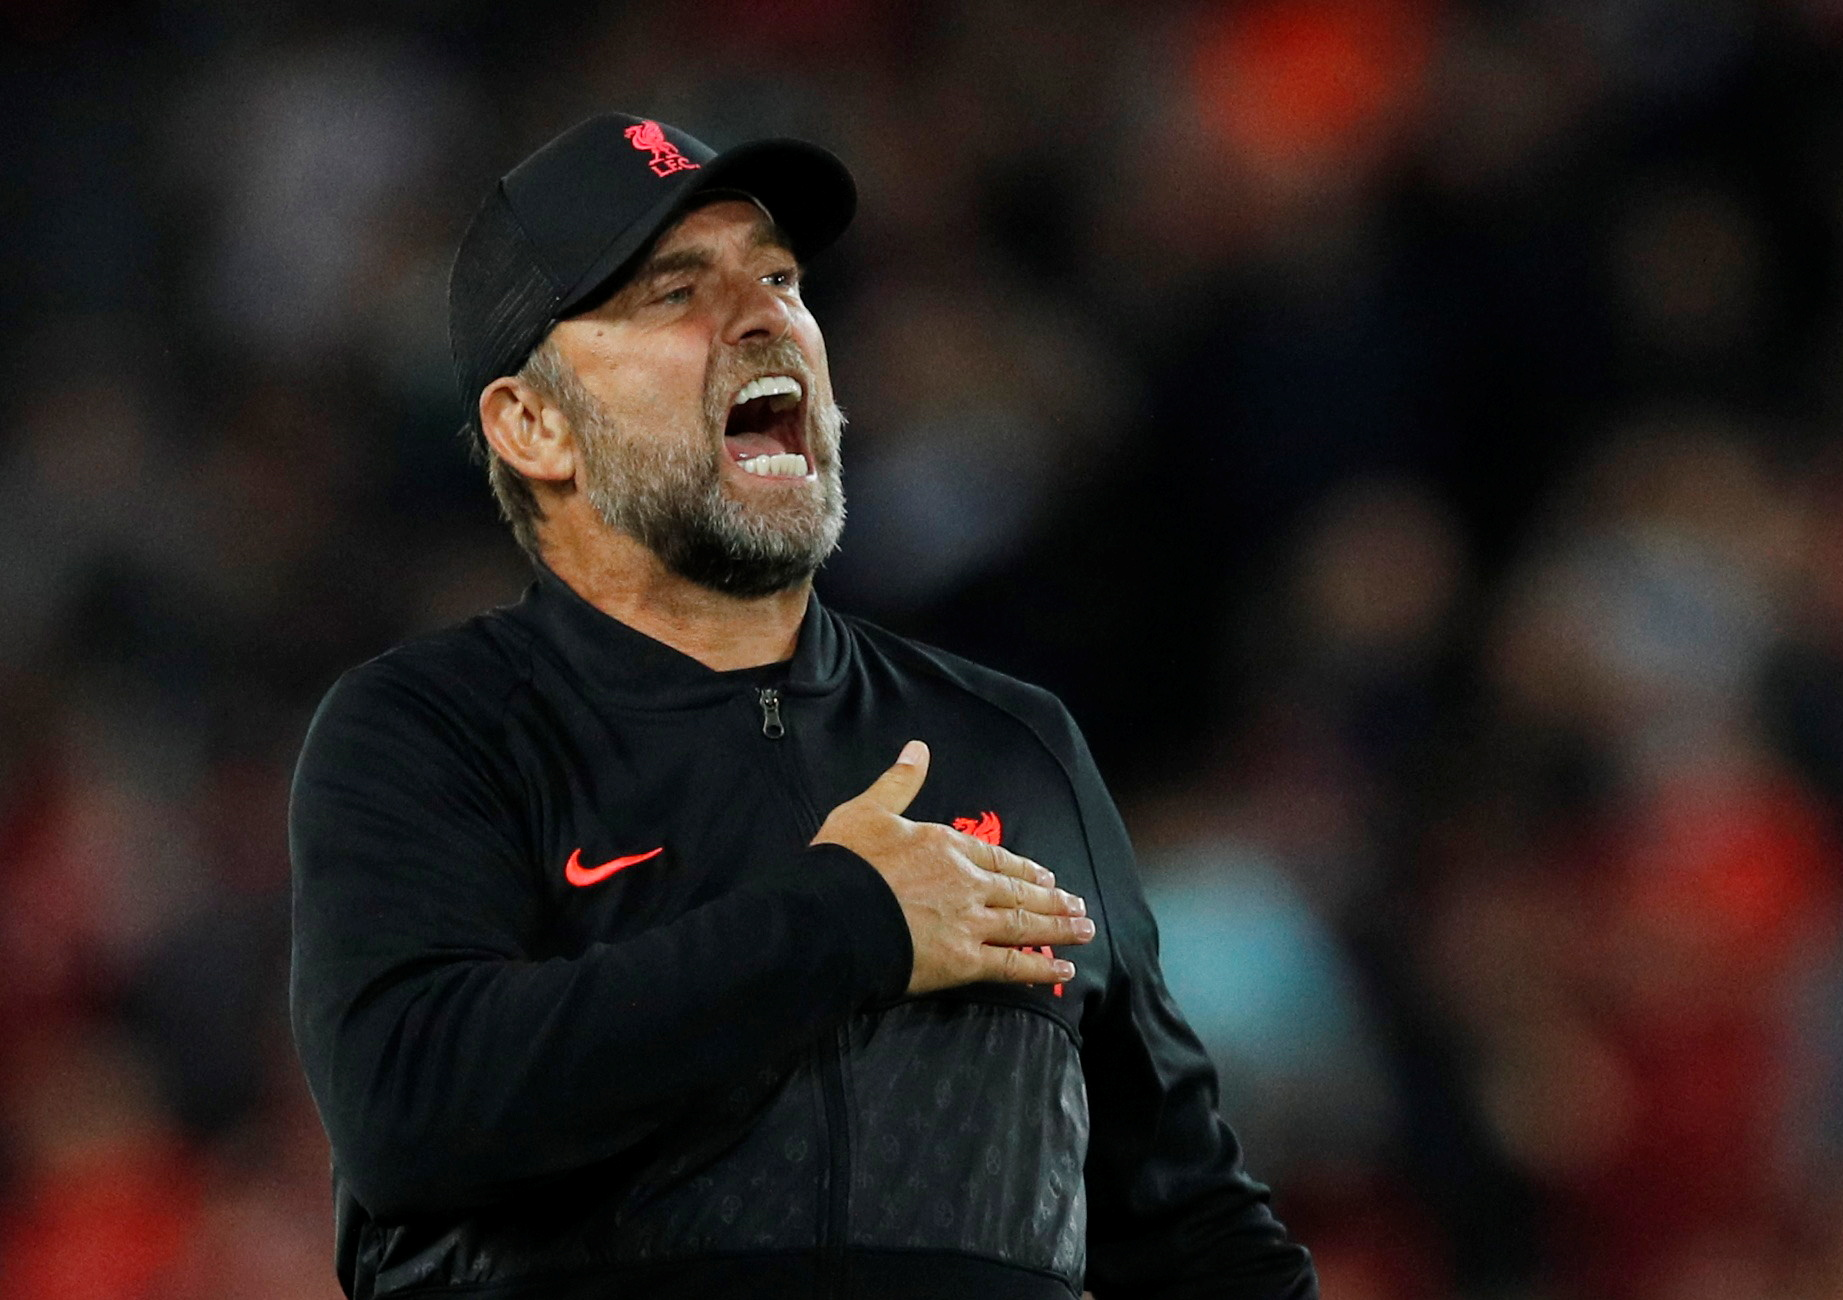 Soccer Football - Champions League - Group B - Liverpool v AC Milan - Anfield, Liverpool, Britain - September 15, 2021 Liverpool manager Juergen Klopp celebrates after the match REUTERS/Phil Noble/File Photo